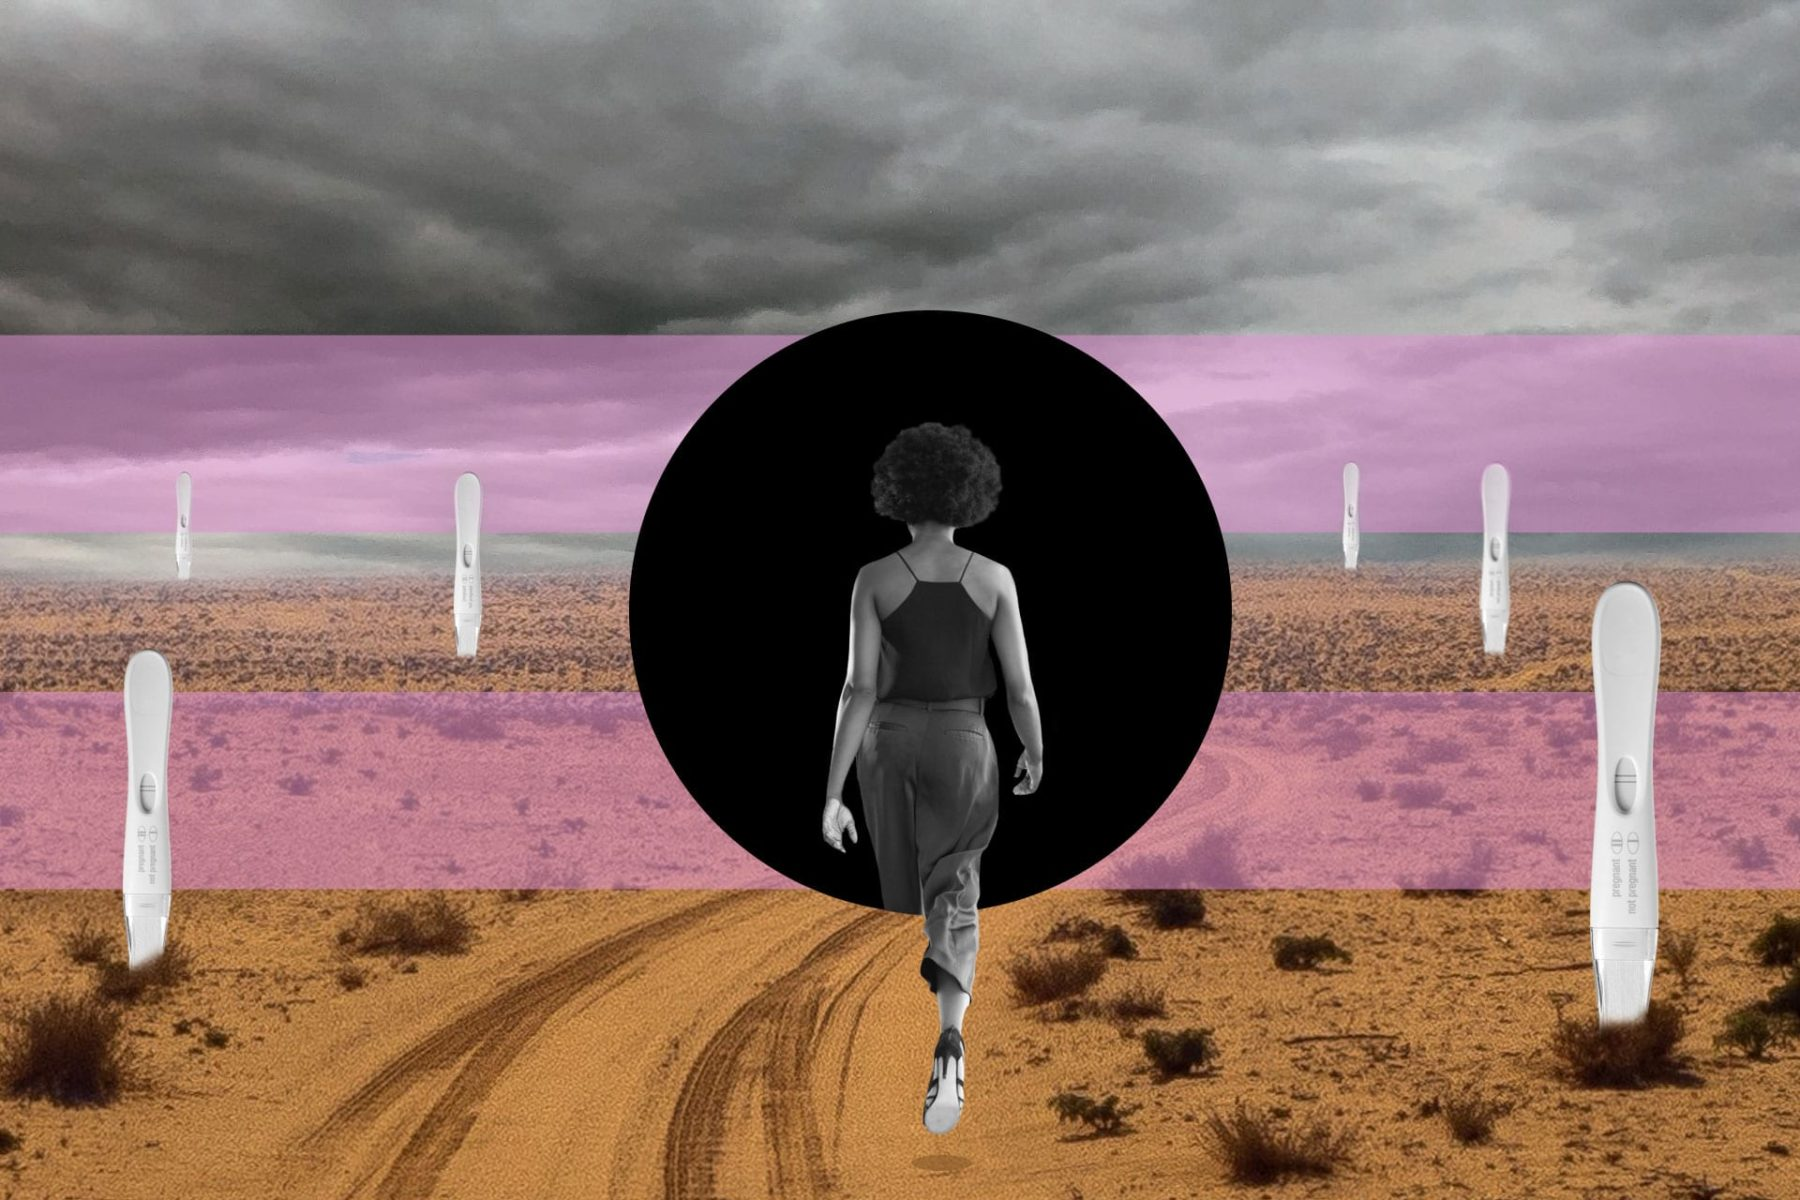 A woman walking into a black hole in a desert.